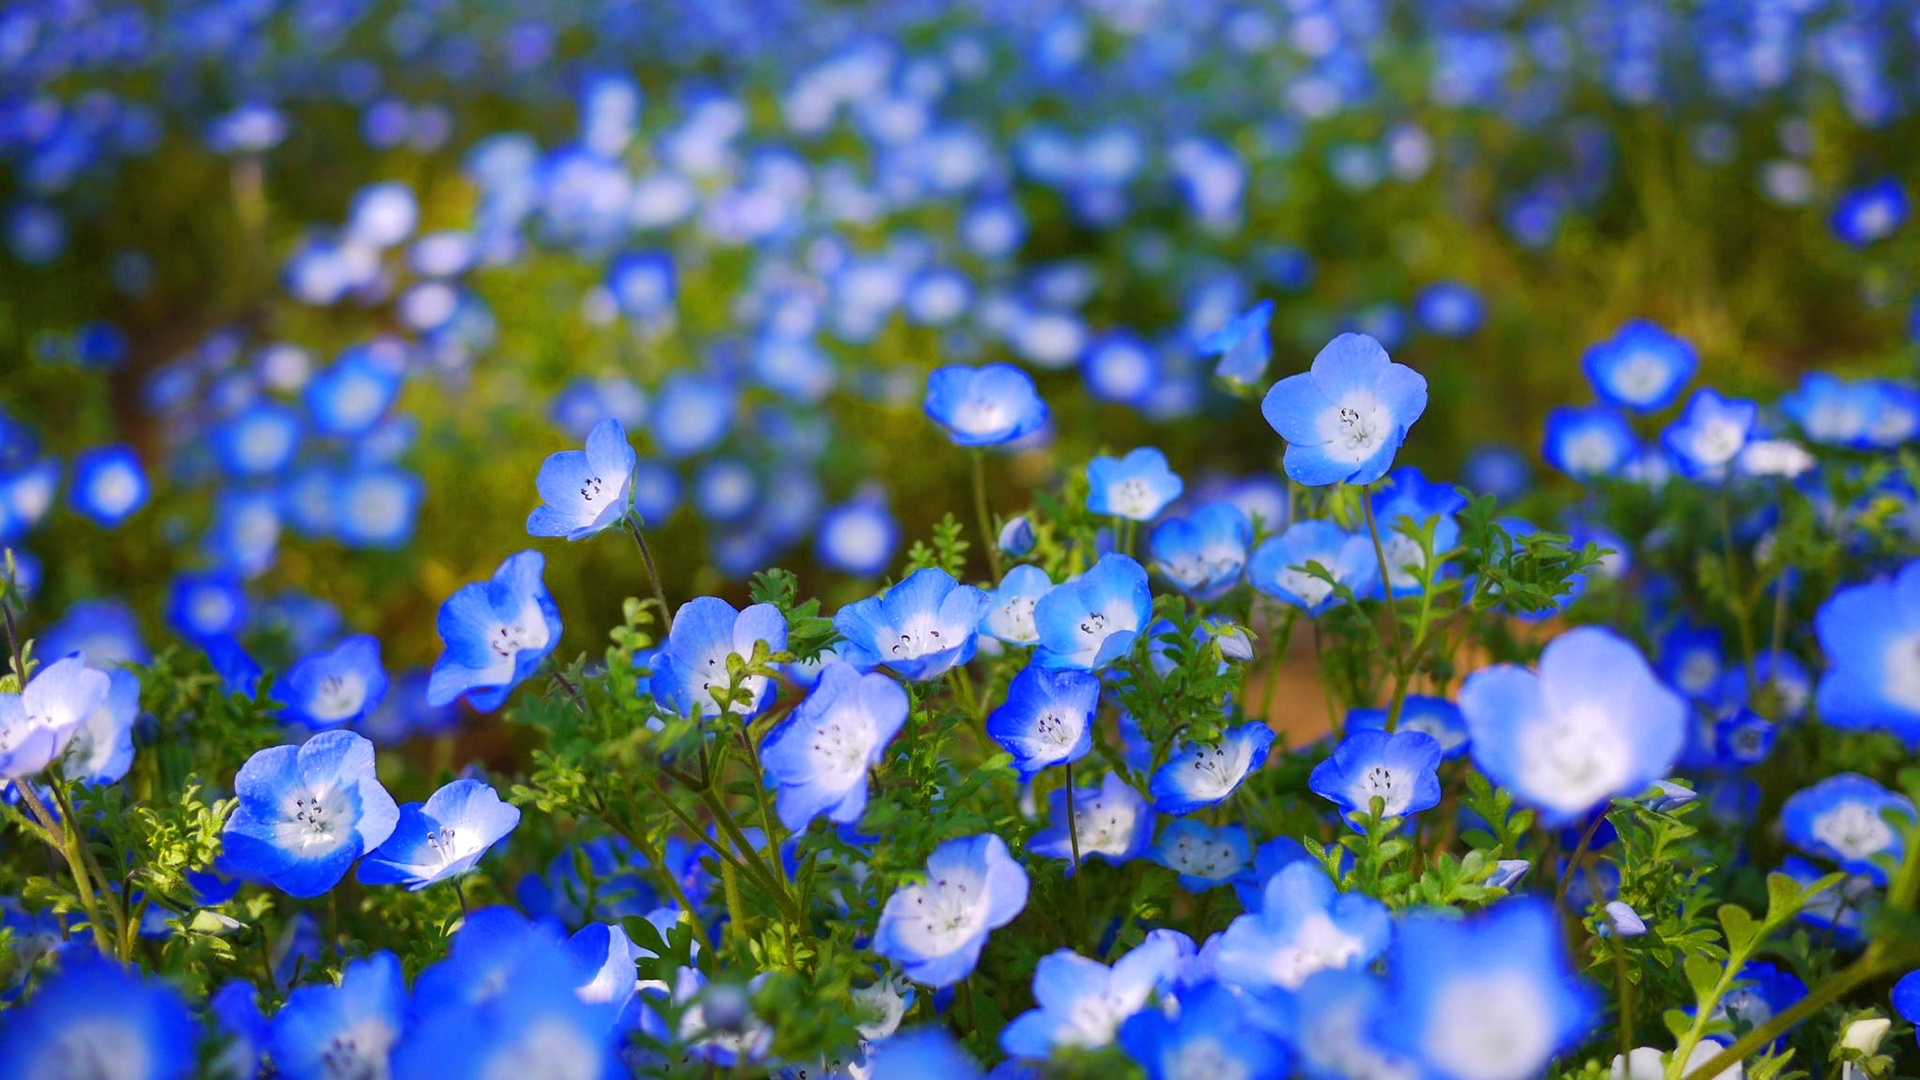 blue flowers garden desktop background field of blue roses 2015795 hd wallpaper backgrounds download blue flowers garden desktop background